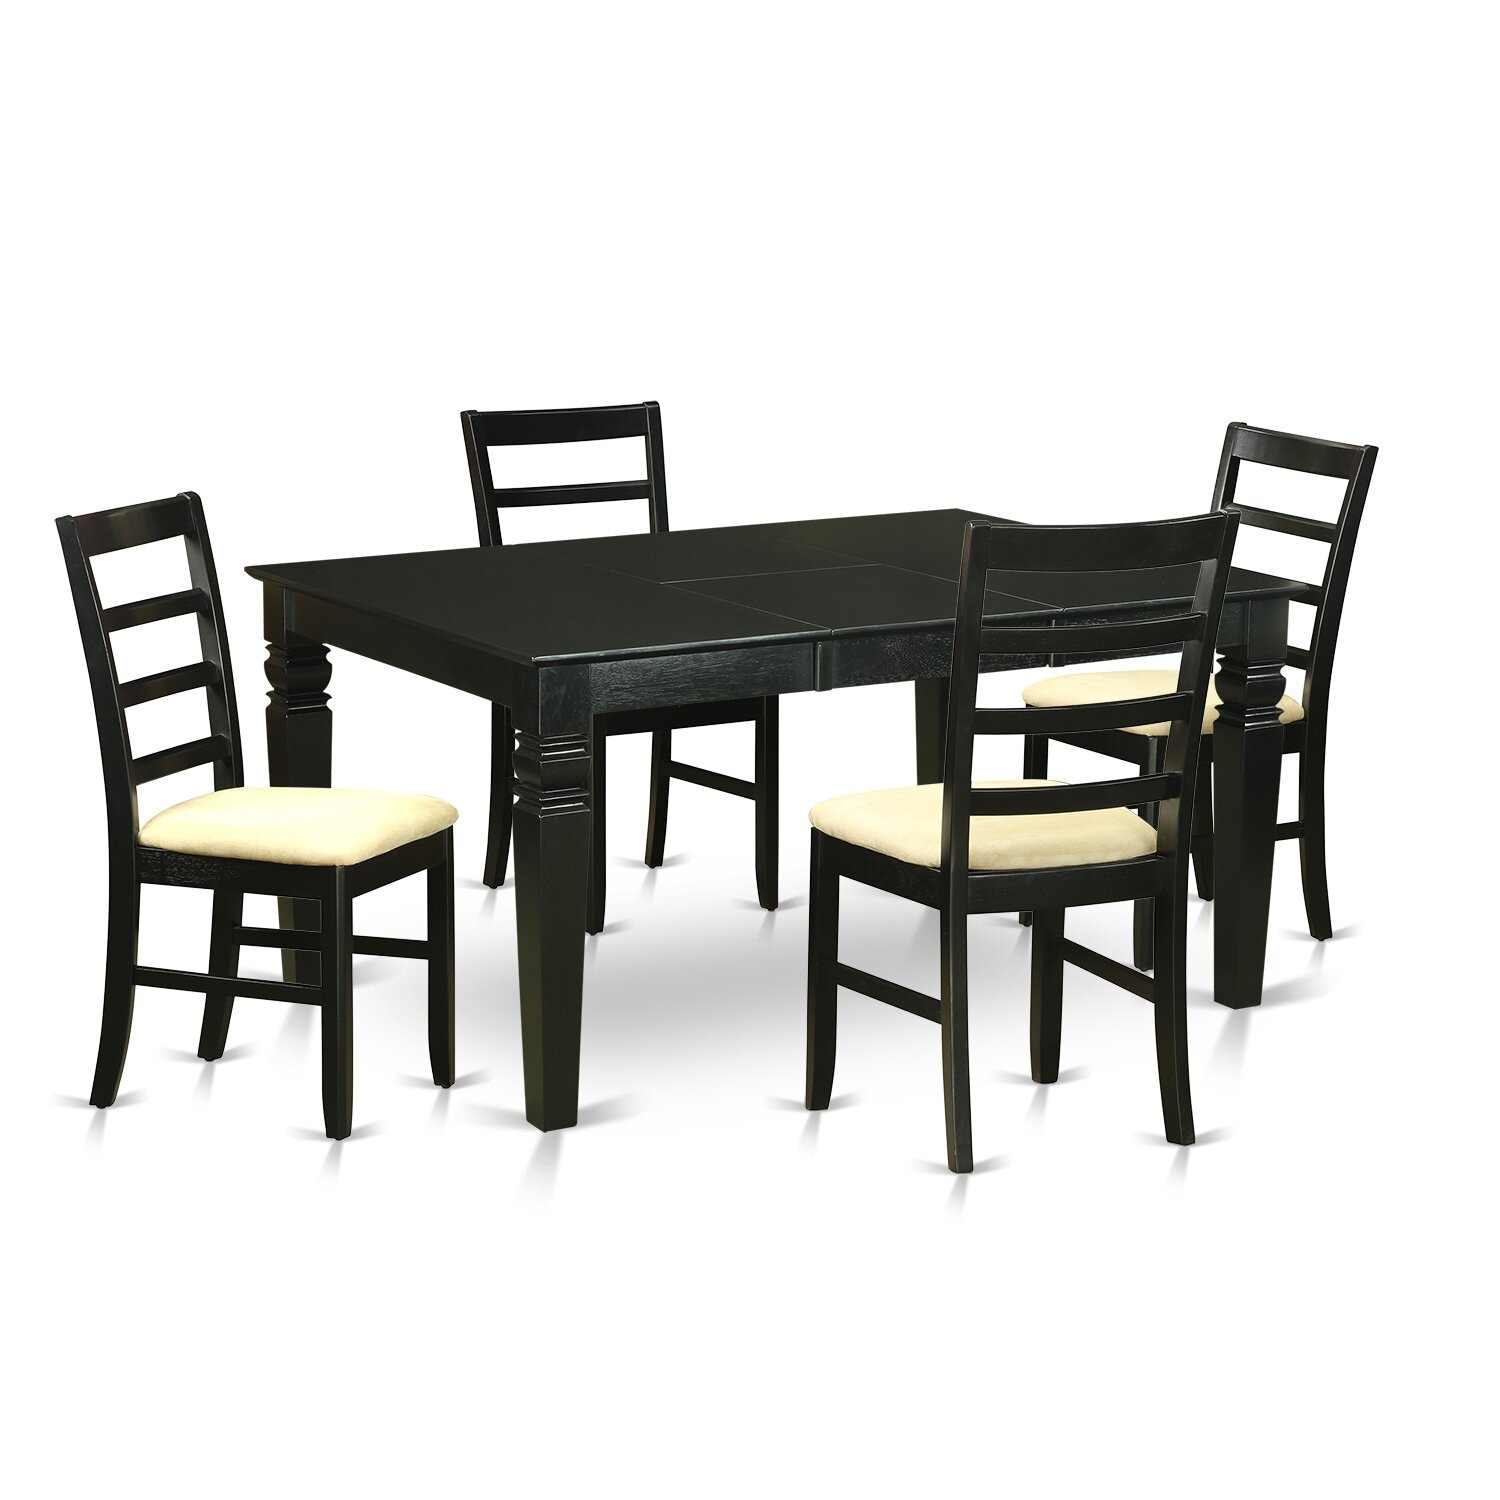 Wooden importers weston 5 piece dining set wayfair for Small kitchen table with 4 chairs